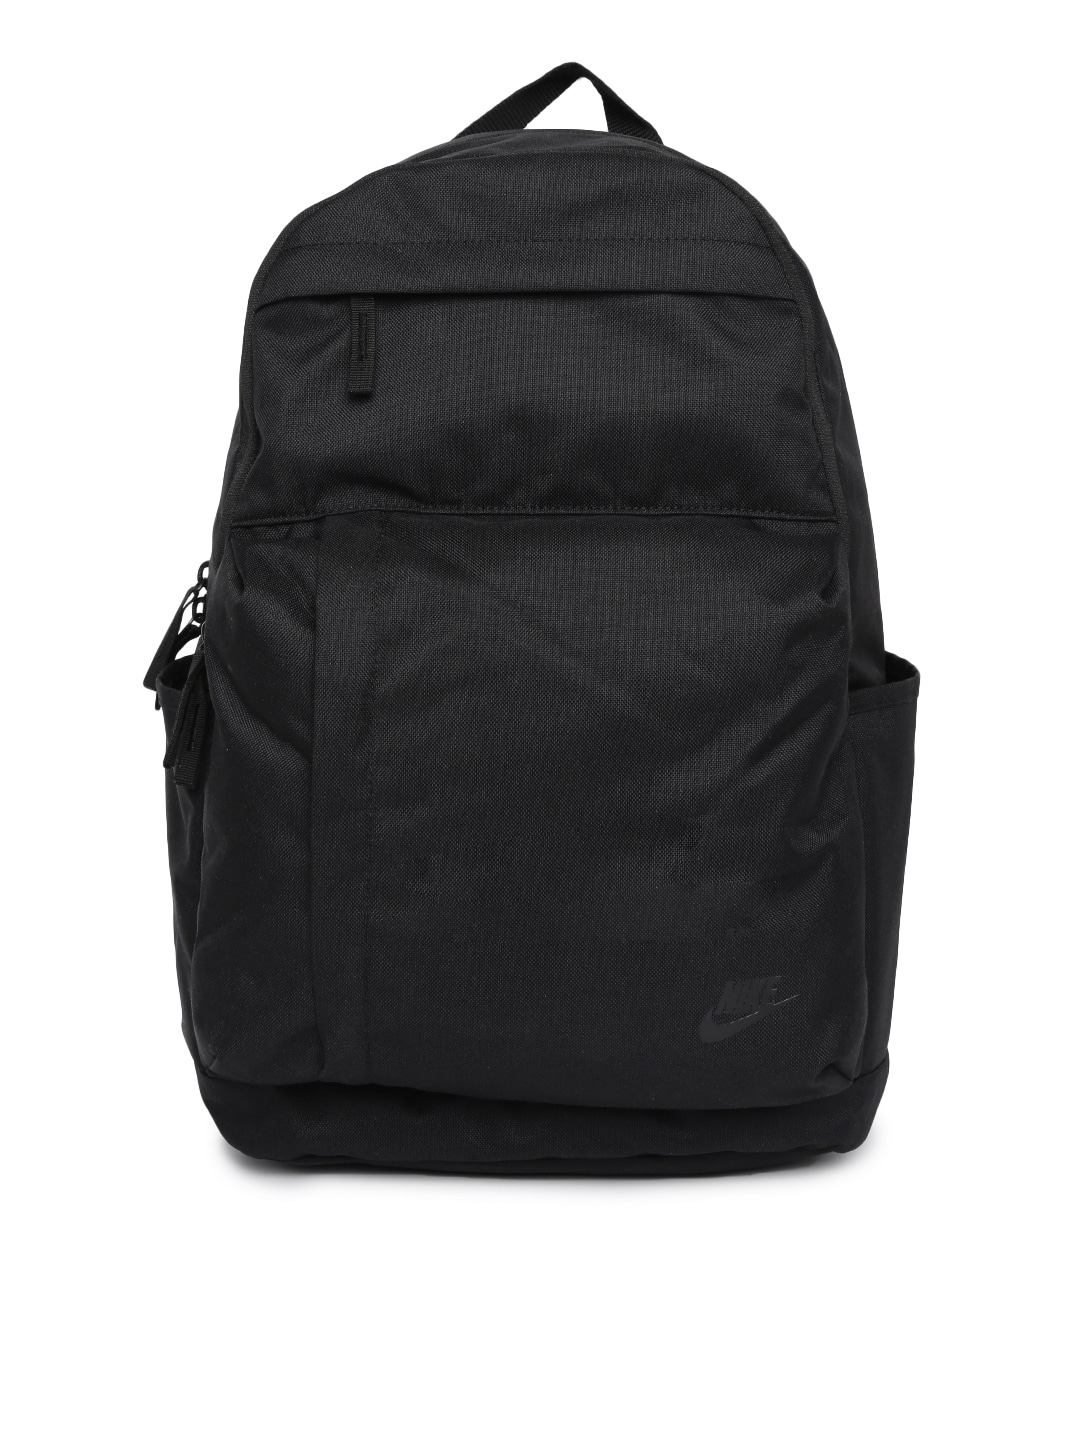 a23702370ab Mens Bags   Backpacks - Buy Bags   Backpacks for Men Online